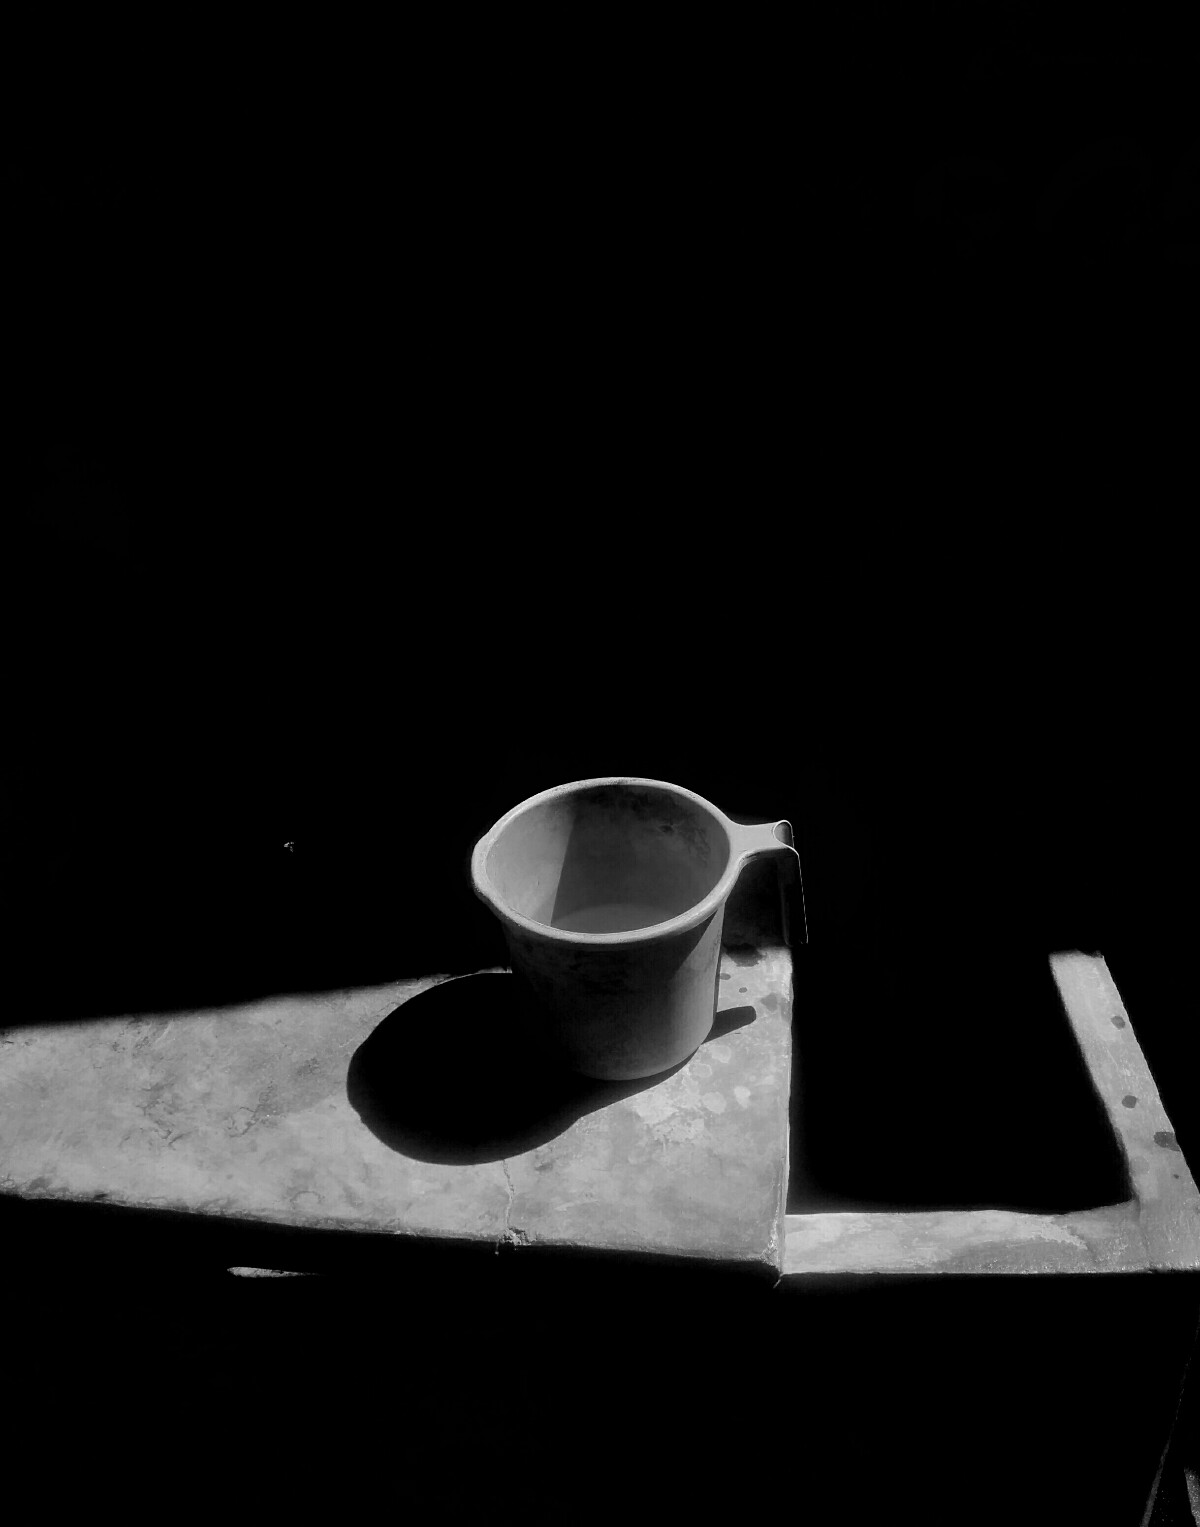 I was having tea at the roadside dhaba . and there i got to capture this beautiful play of light and shadow.